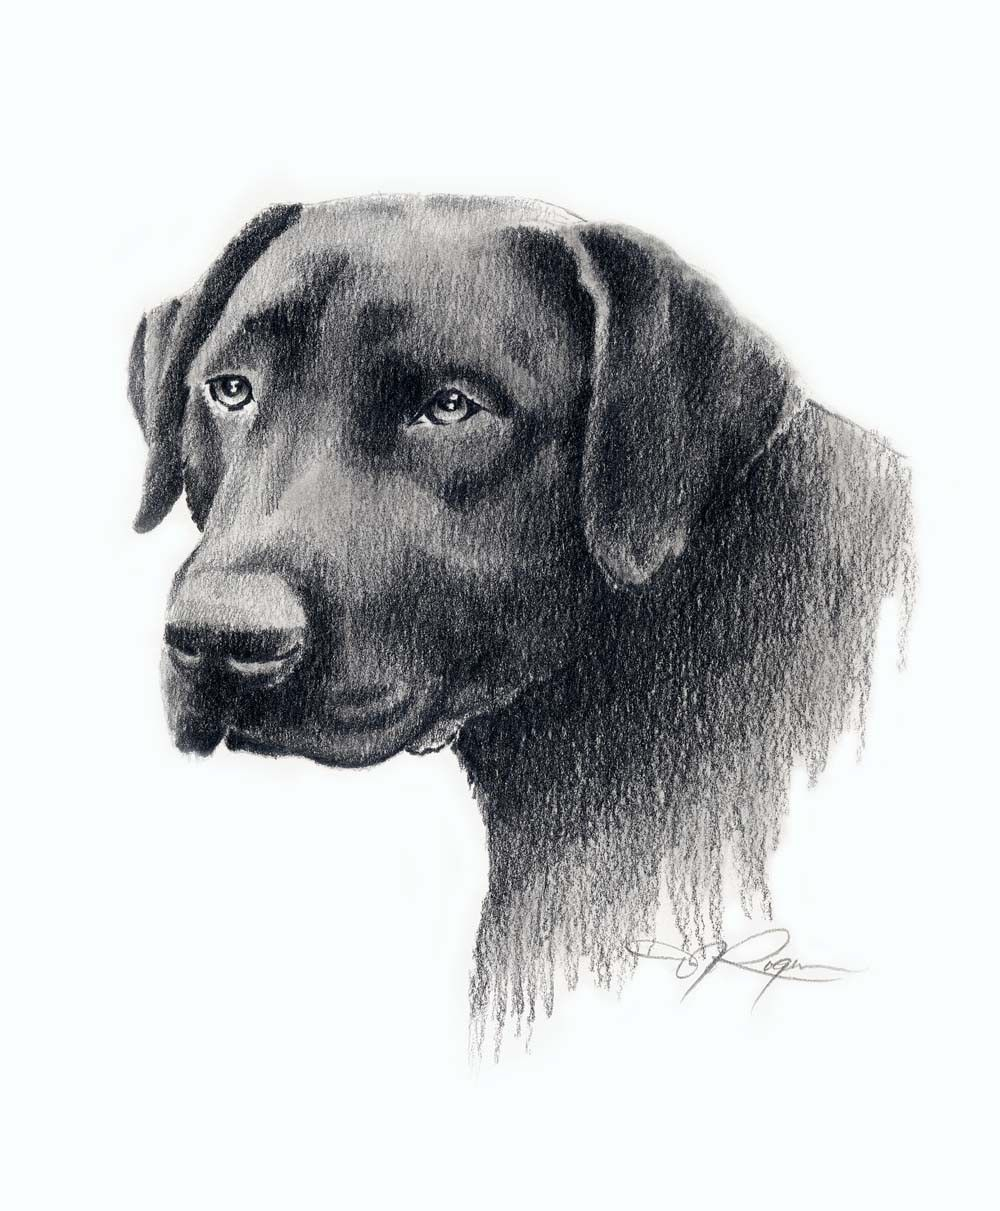 Black lab drawing labrador dog art print by artist dj rogers in 2019 drawings dessin chien - Dessin labrador ...